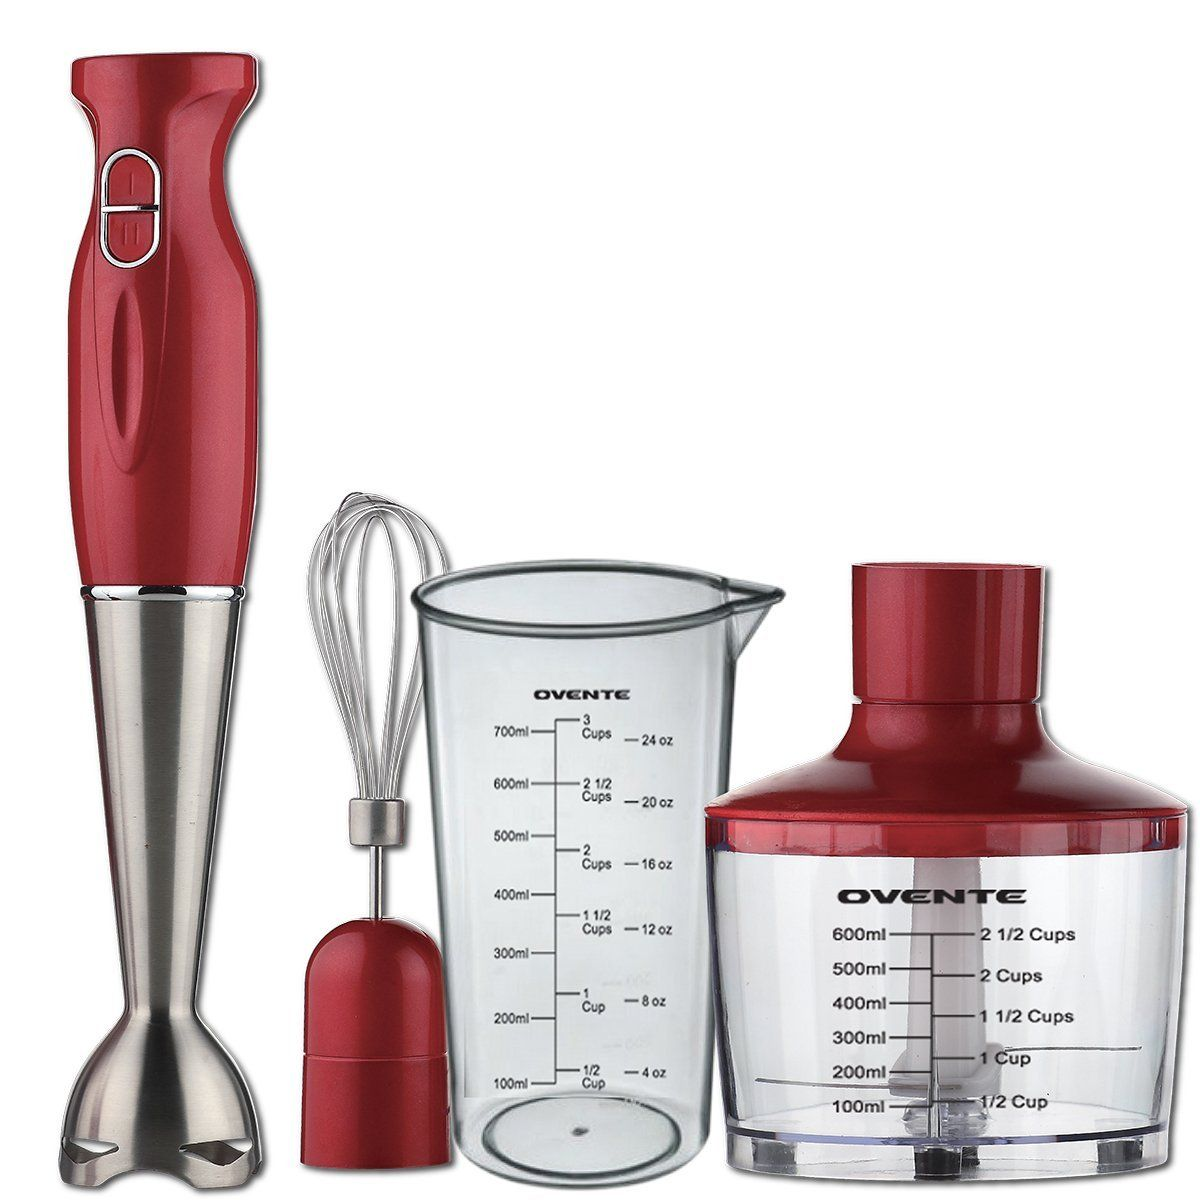 Ovente HS585R Robust Stainless Steel Immersion Hand Blender with Beaker, Whisk Attachment and Food Chopper, Red -- Continue to the product at the image link.